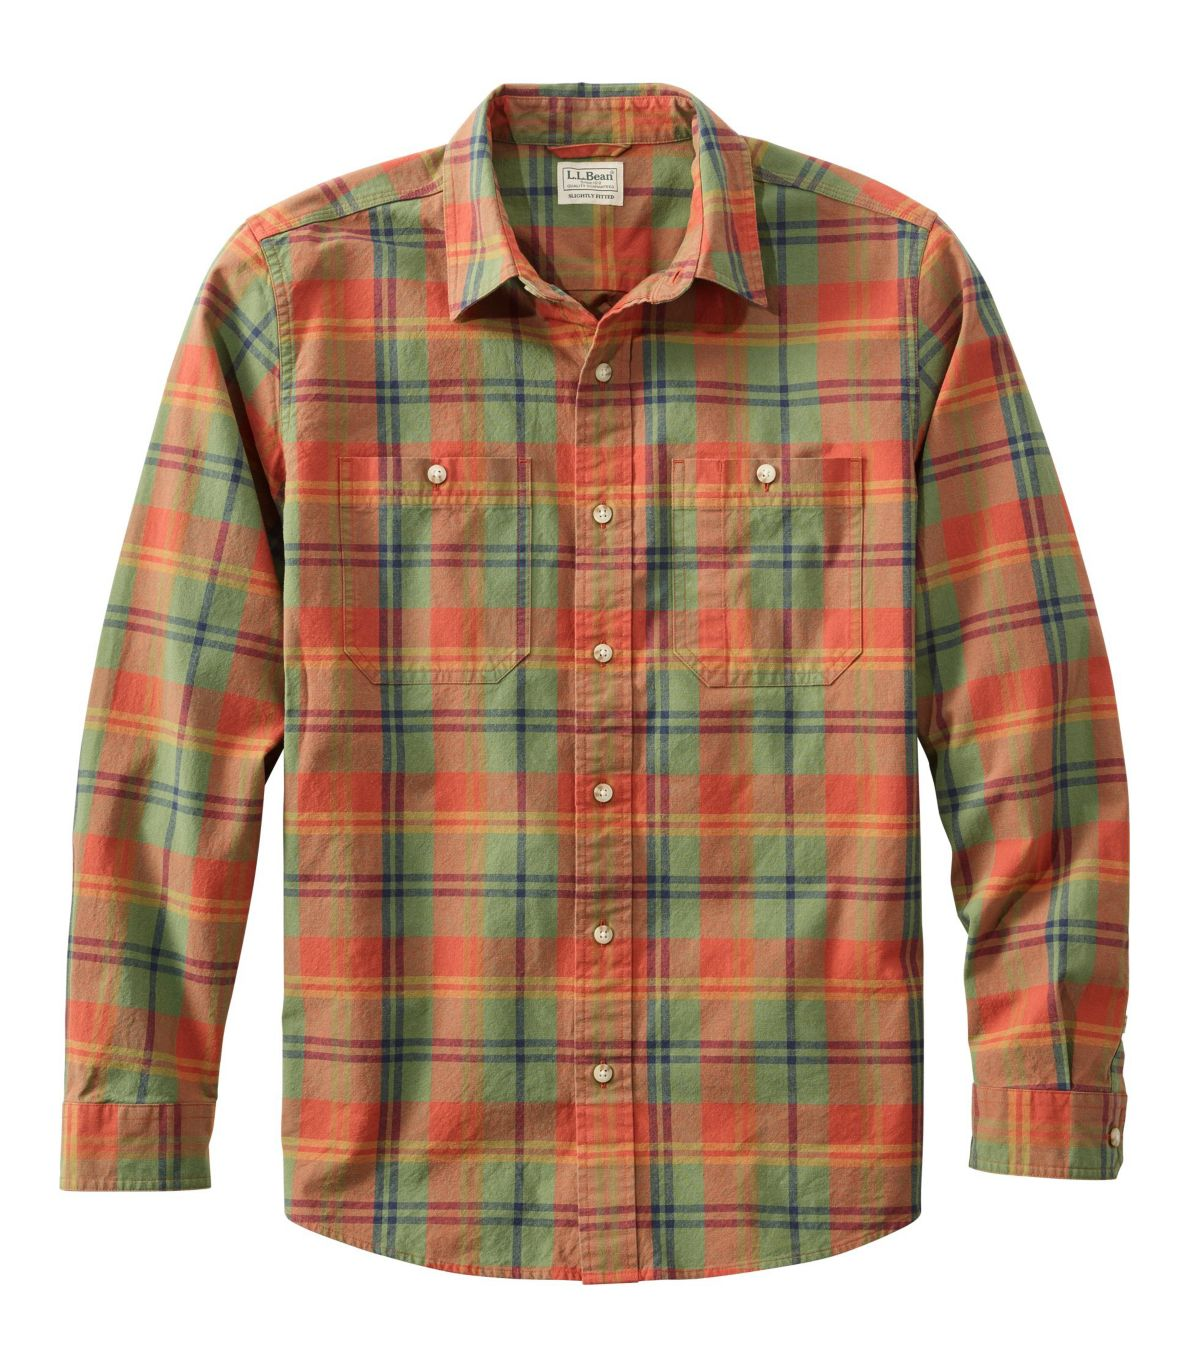 Men's Sunwashed Canvas Shirt, Slightly Fitted, Long-Sleeve Plaid